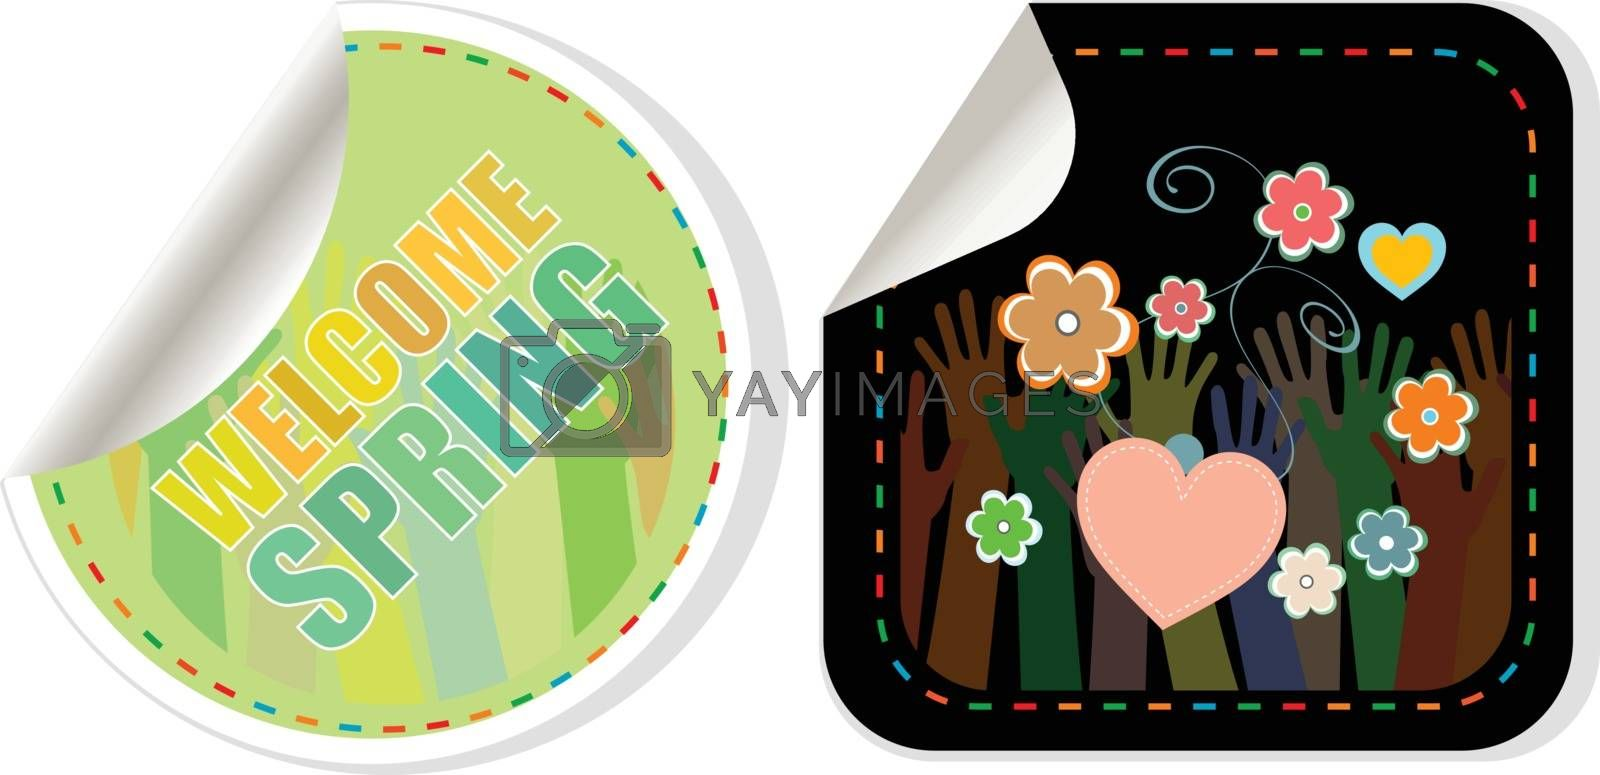 Welcome Spring Holiday Card. Welcome Spring Vector. Welcome Spring web button isolated on white. Spring Holiday Graphic. Welcome Spring Art. Spring Holiday Drawing